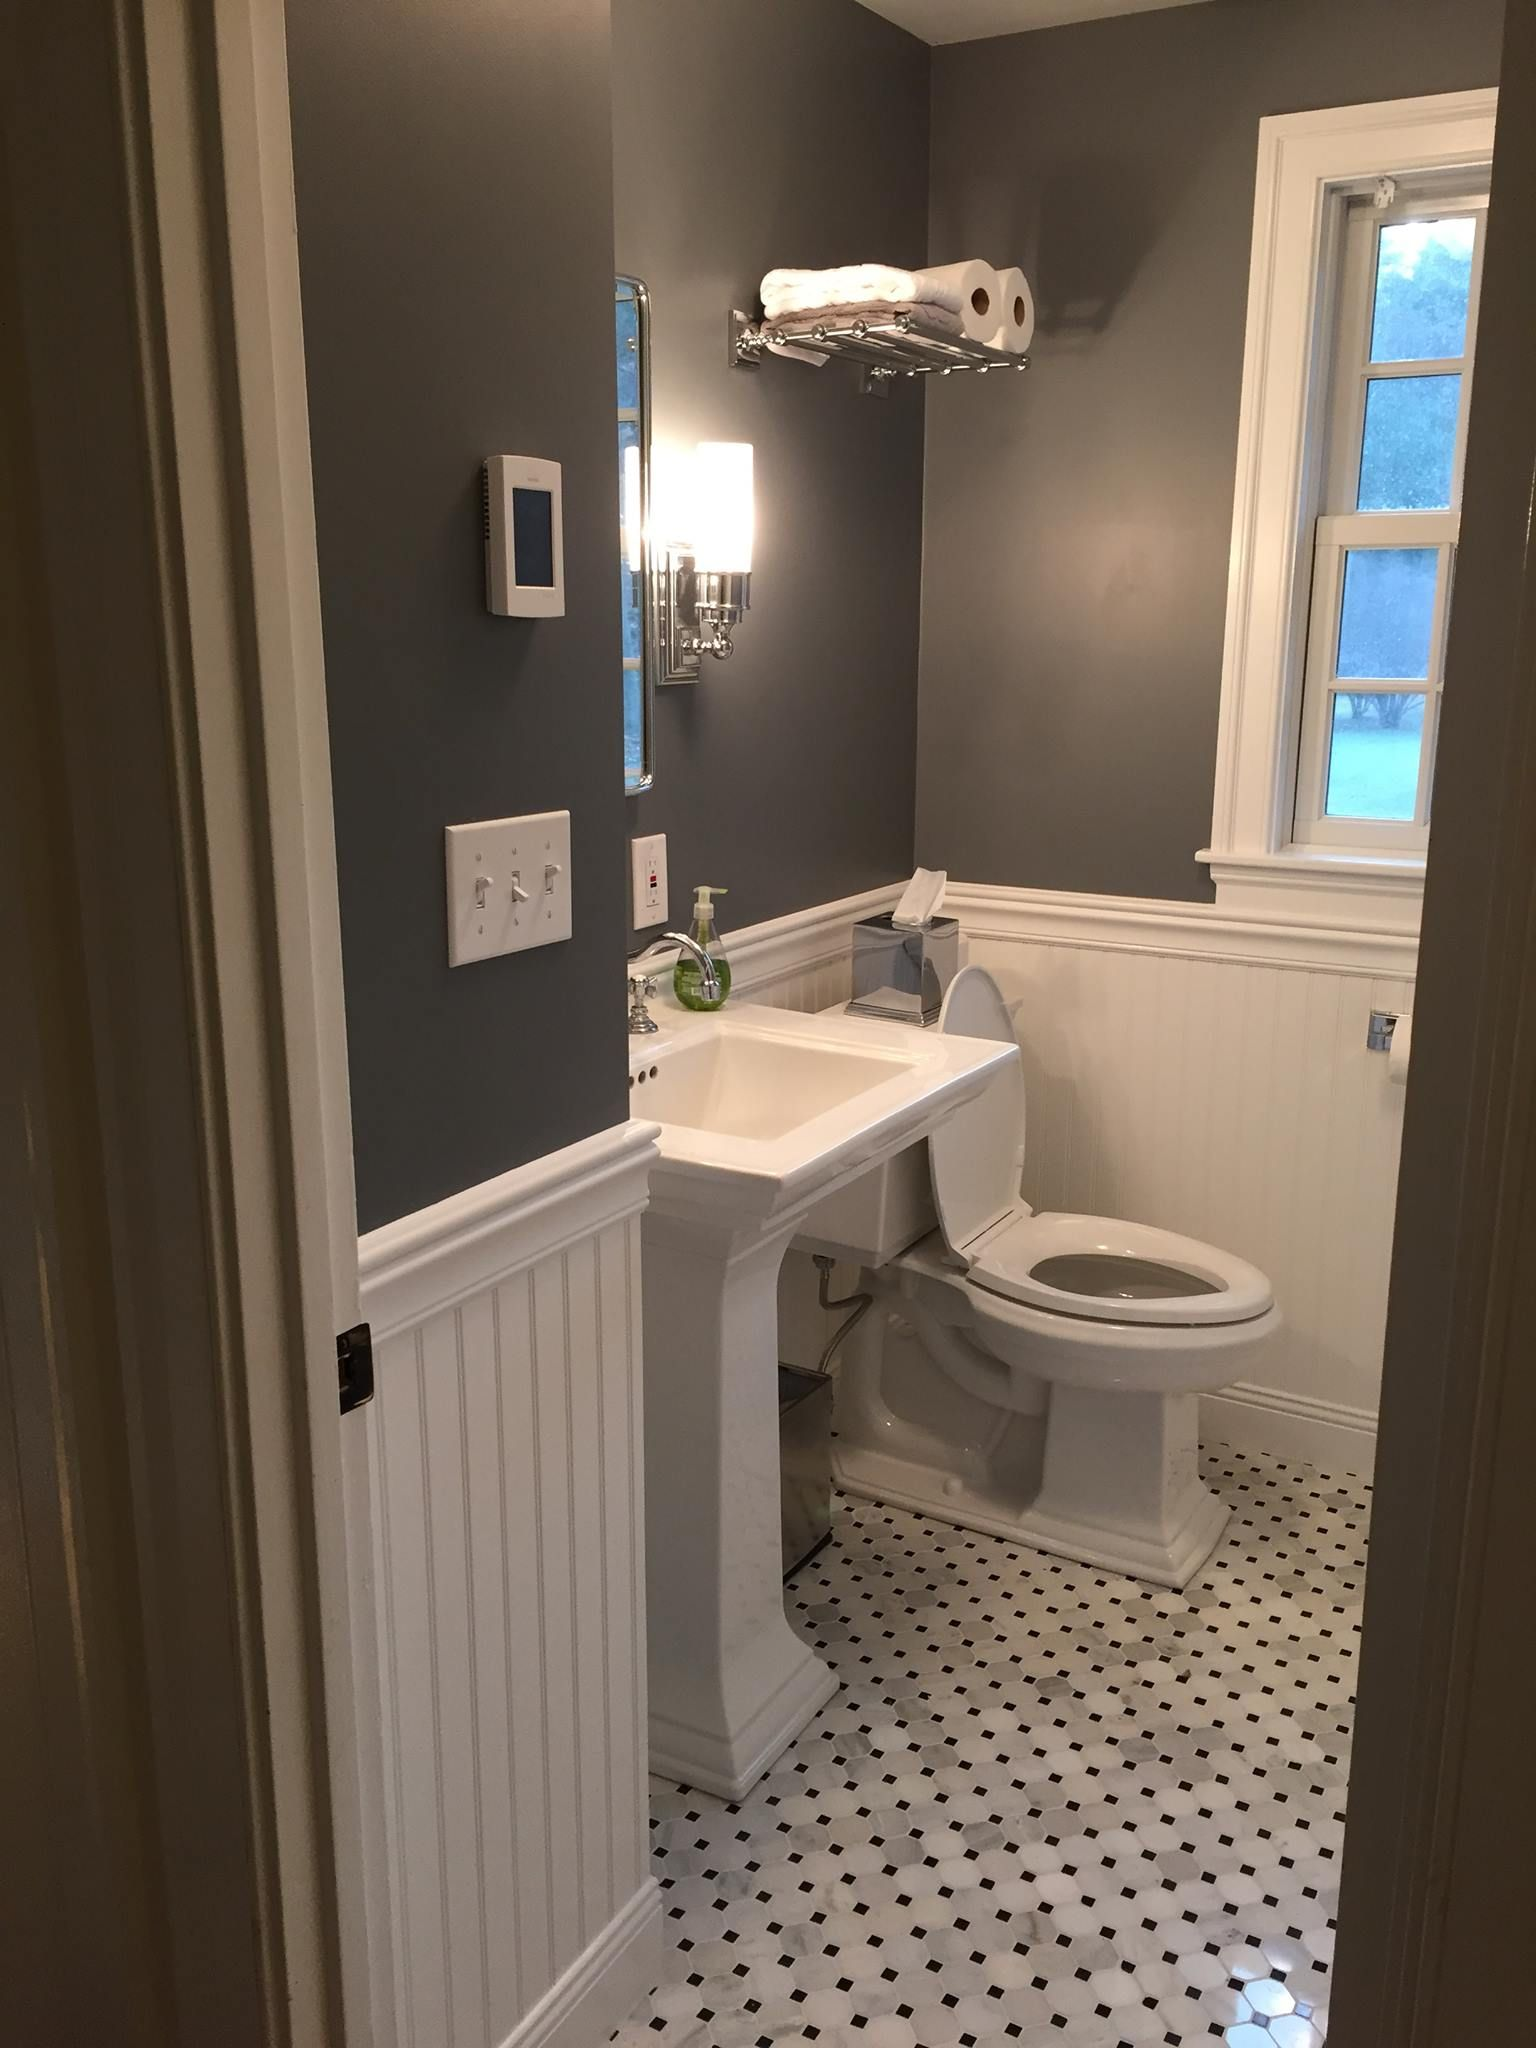 Tiny bathroom remodel. Paint is Rock Gray by Benjamin Moore. Tile is Hampton Hermosa set on the diagonal. Sconces, medicine cabinet, sink fixtures, and train rack all Pottery Barn. Sink and toilet are Kohler. #smallbathroomremodel